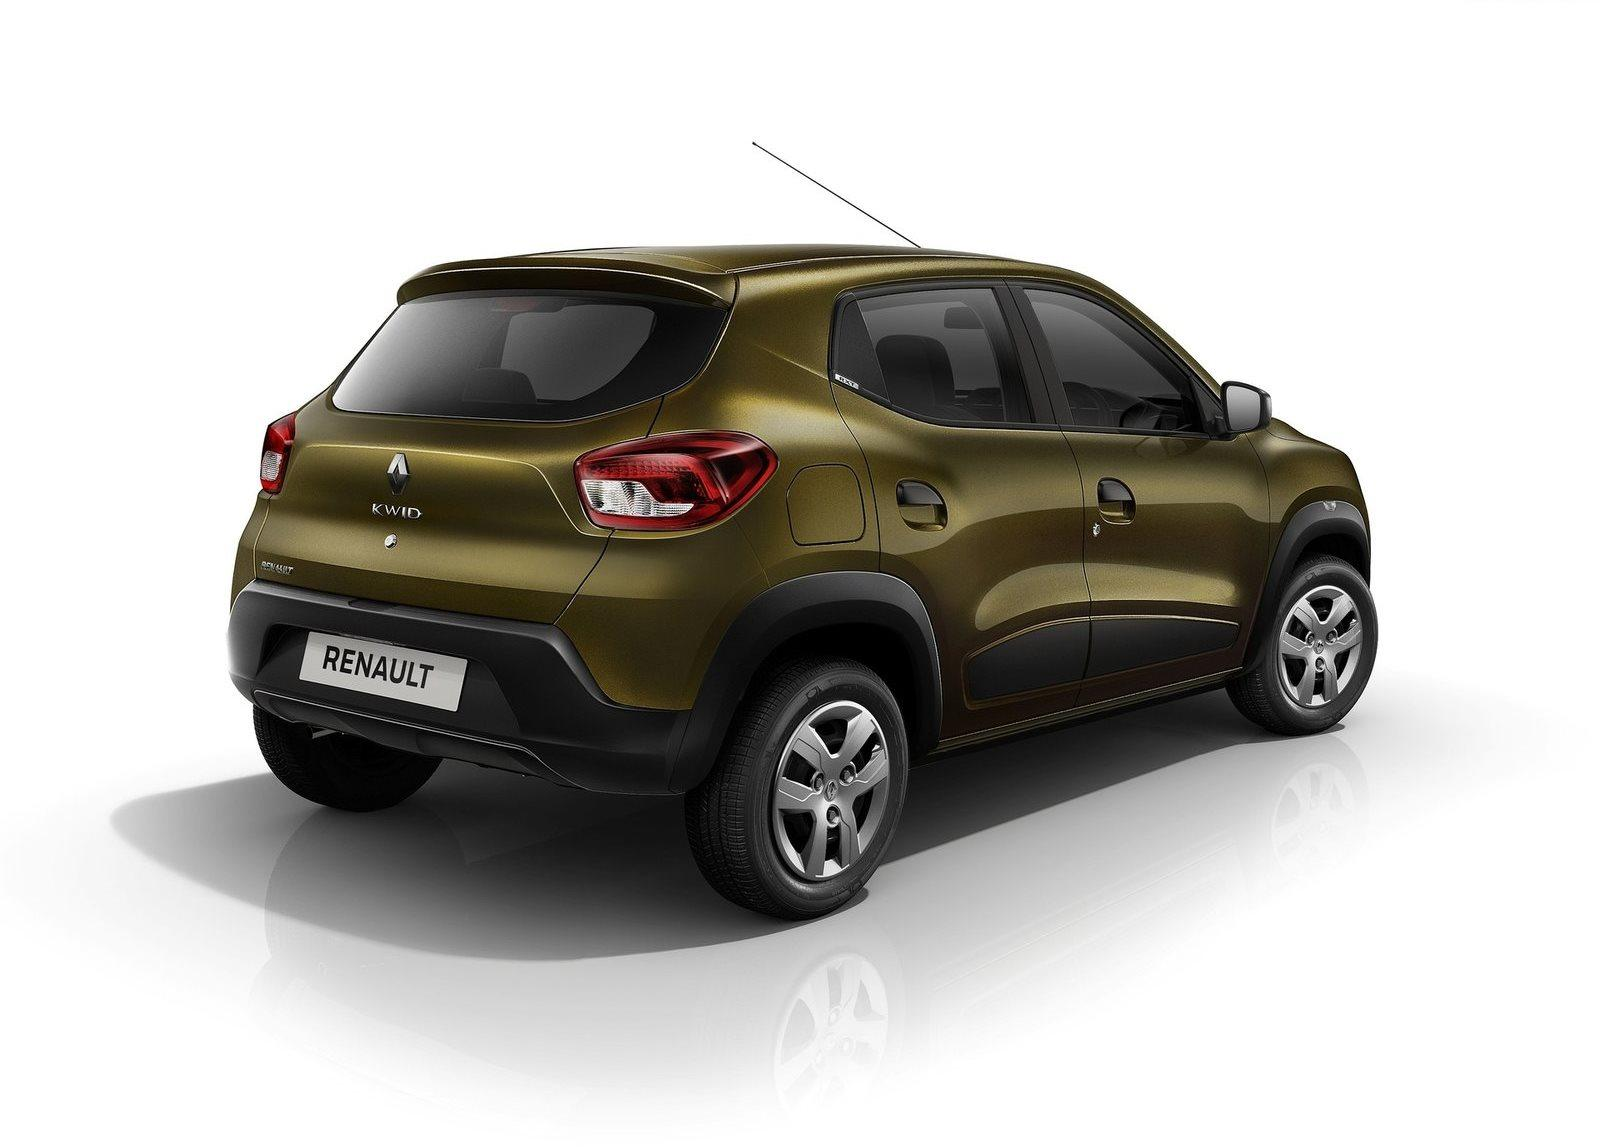 Renault Kwid Wallpapers Wallpaper Cave